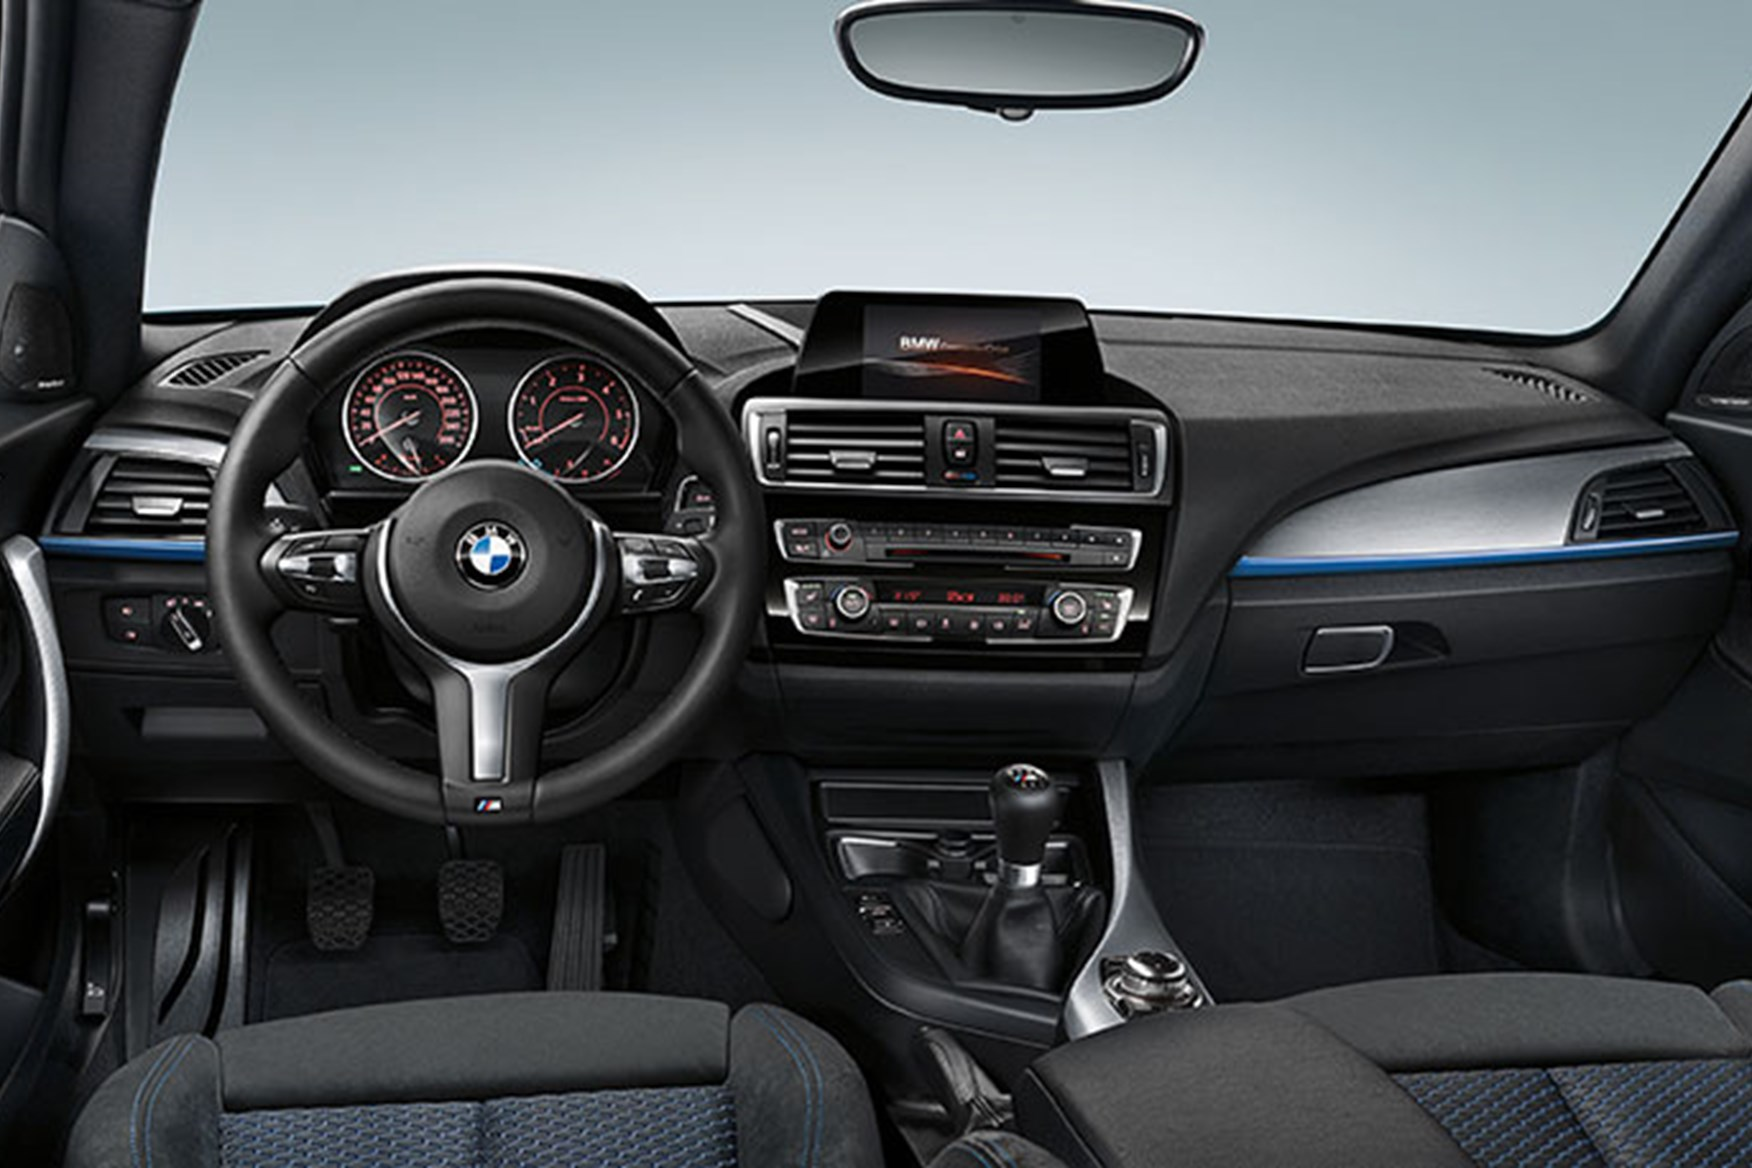 ... Inside Tidied Up Cabin Of New 2015 BMW 1 Series Hatch ...